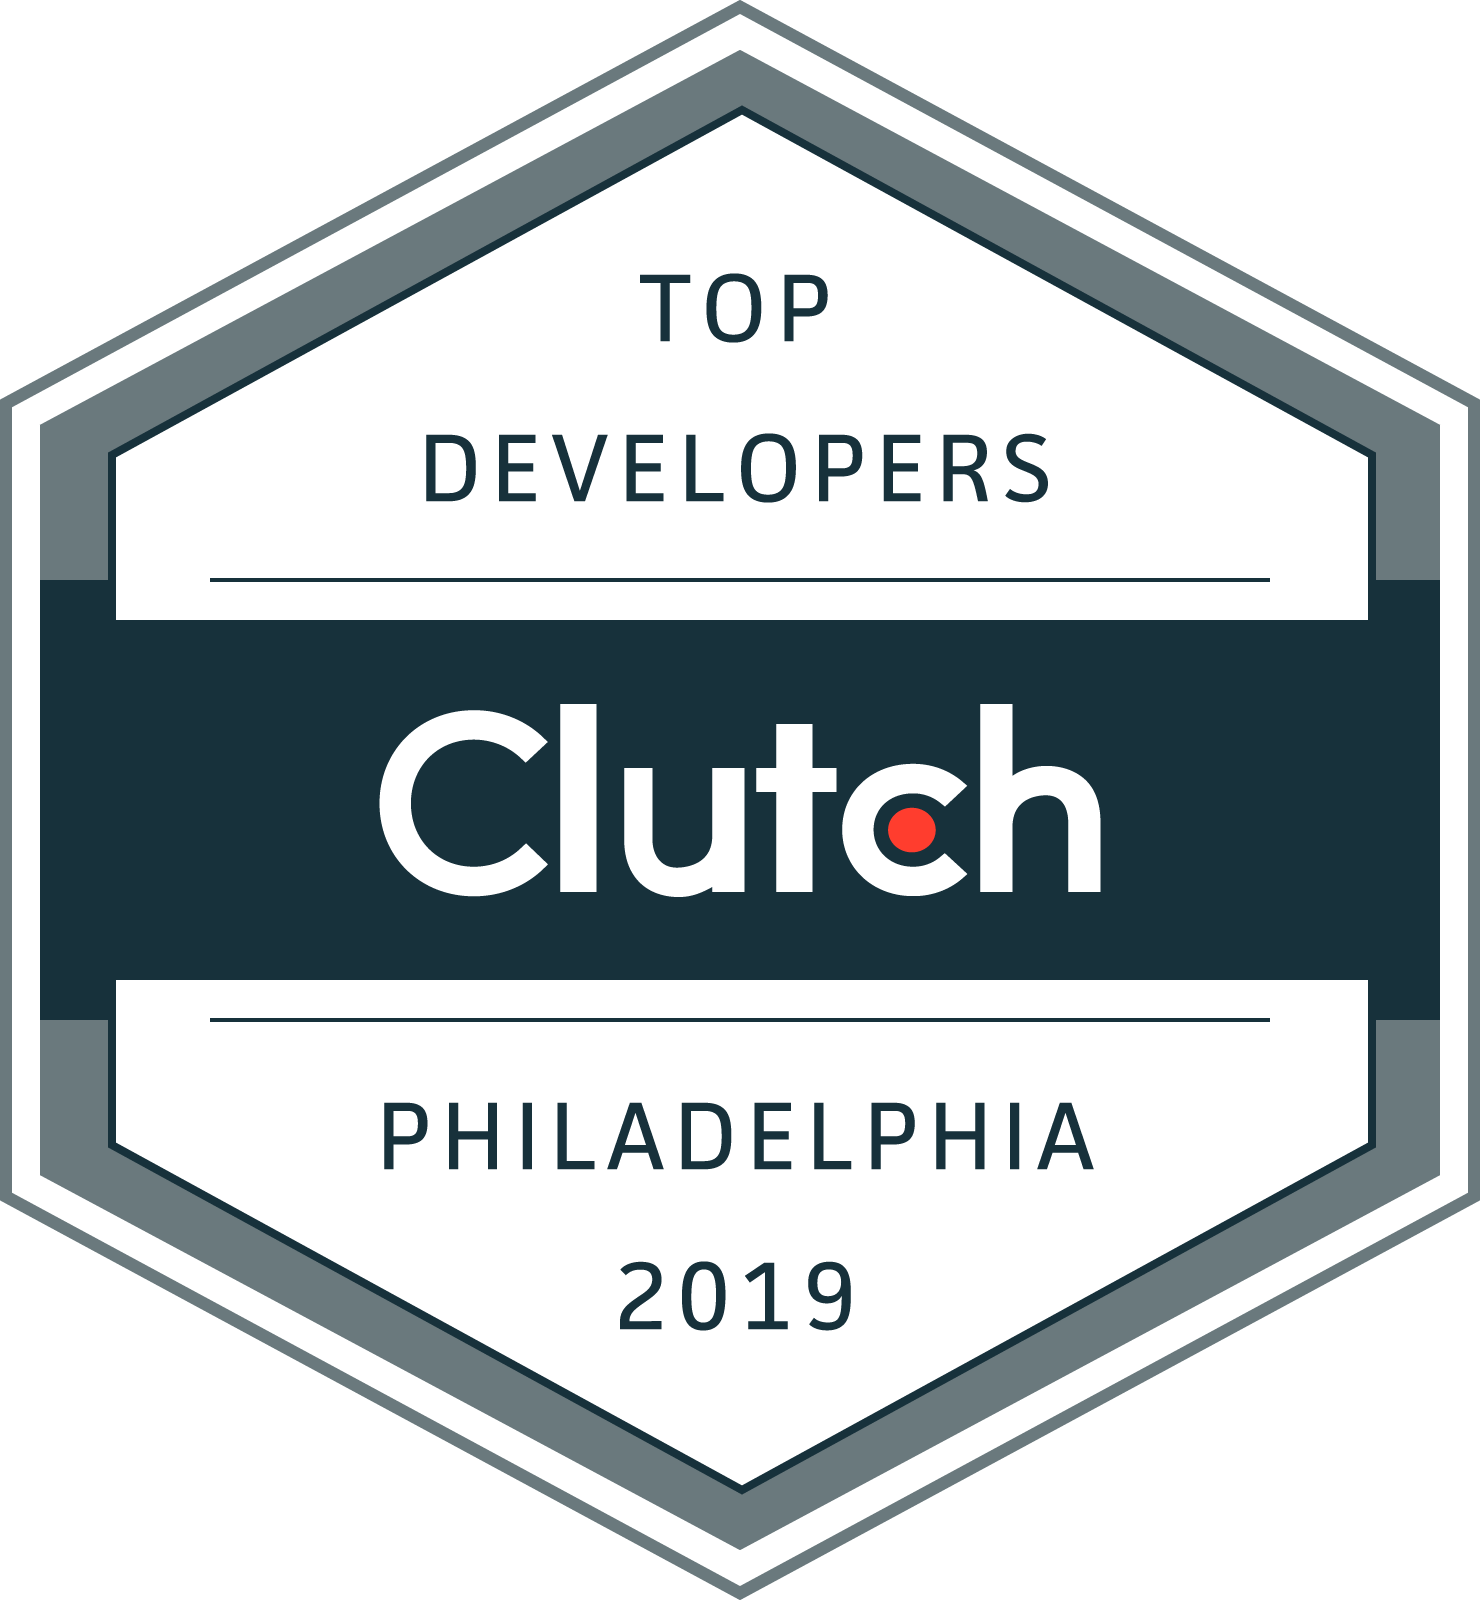 Developers_Philadelphia_2019